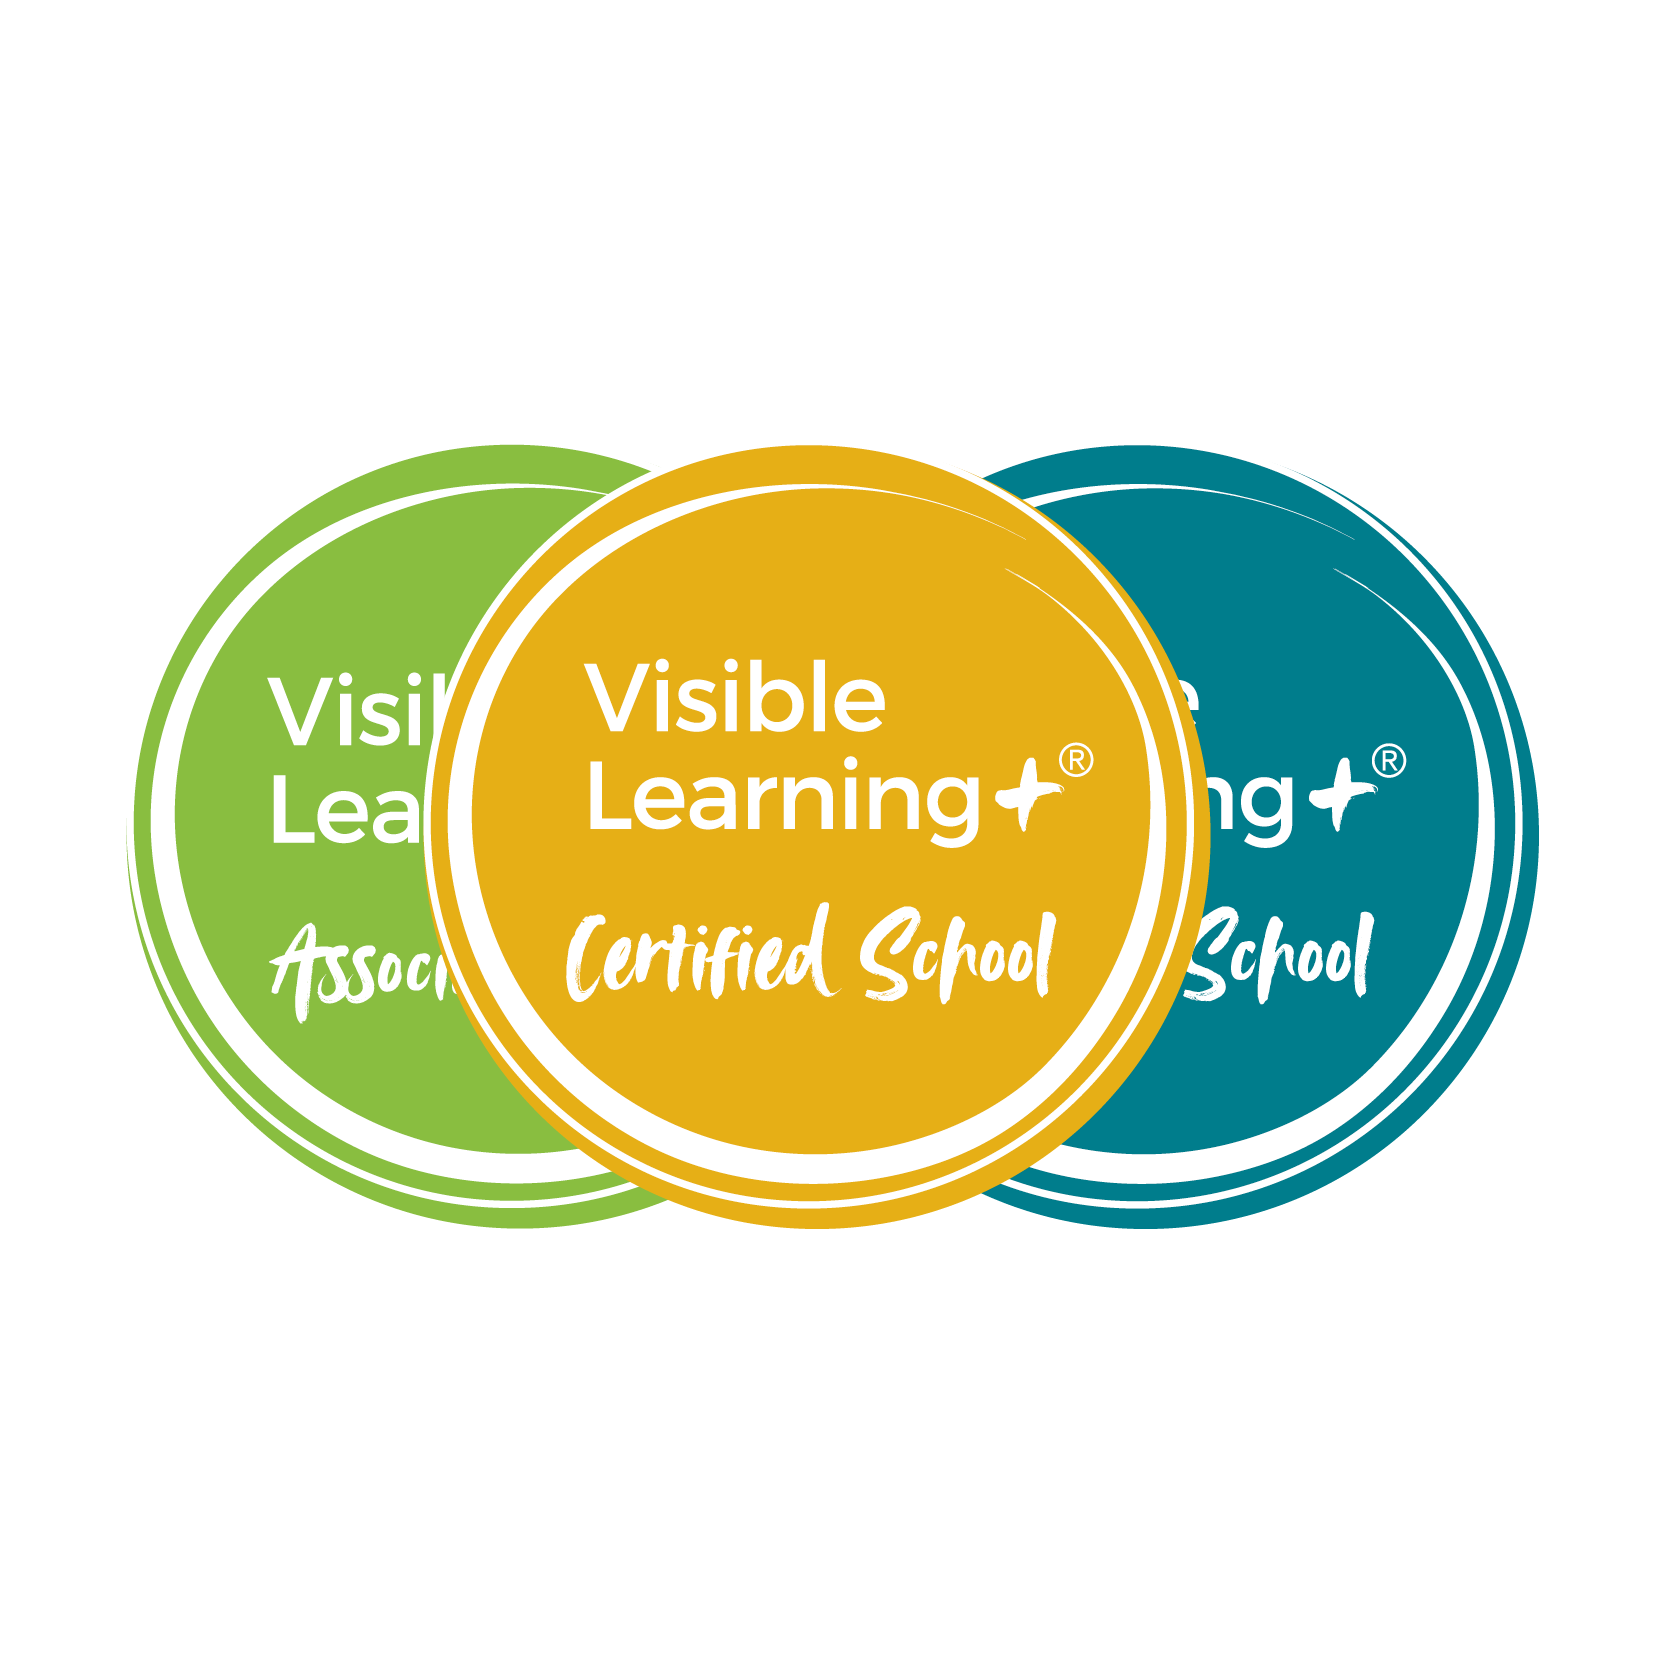 Visible Learning School Awards